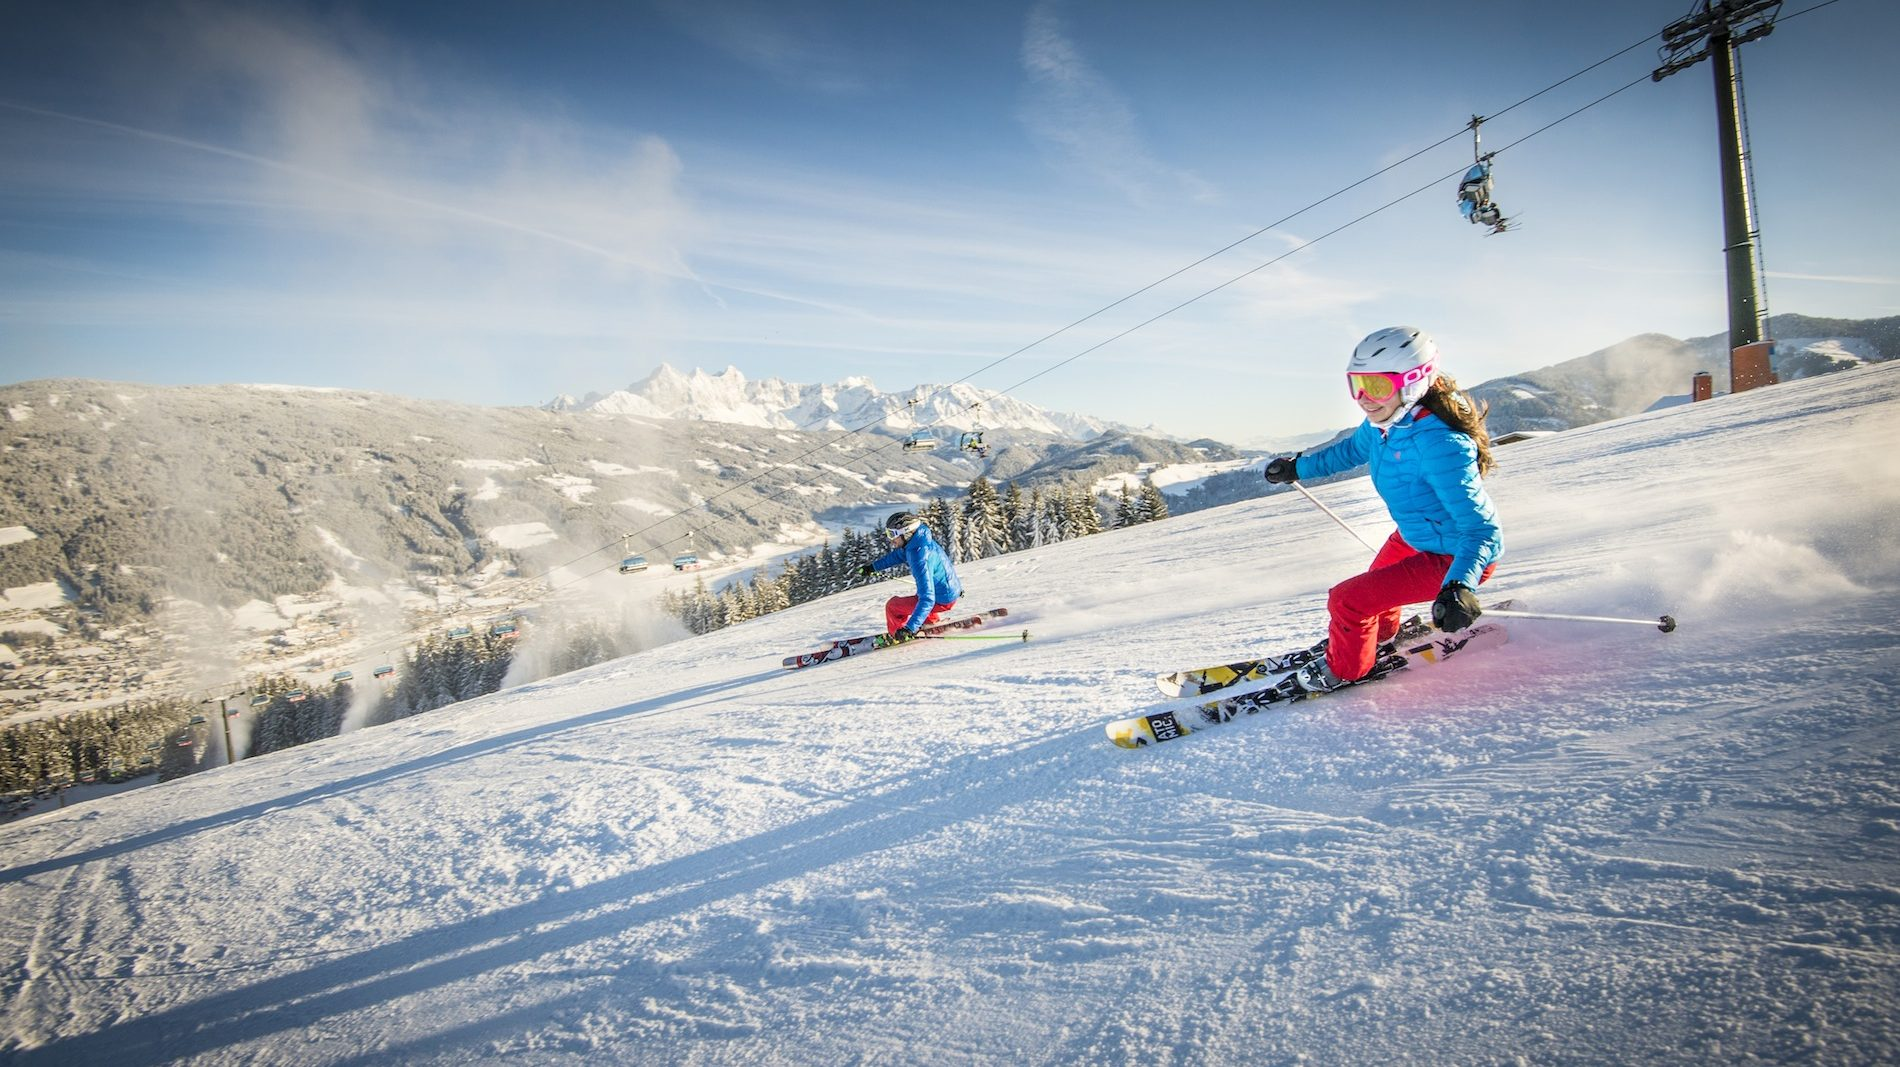 radstadt: old mountain town and sports paradise in winter and summer